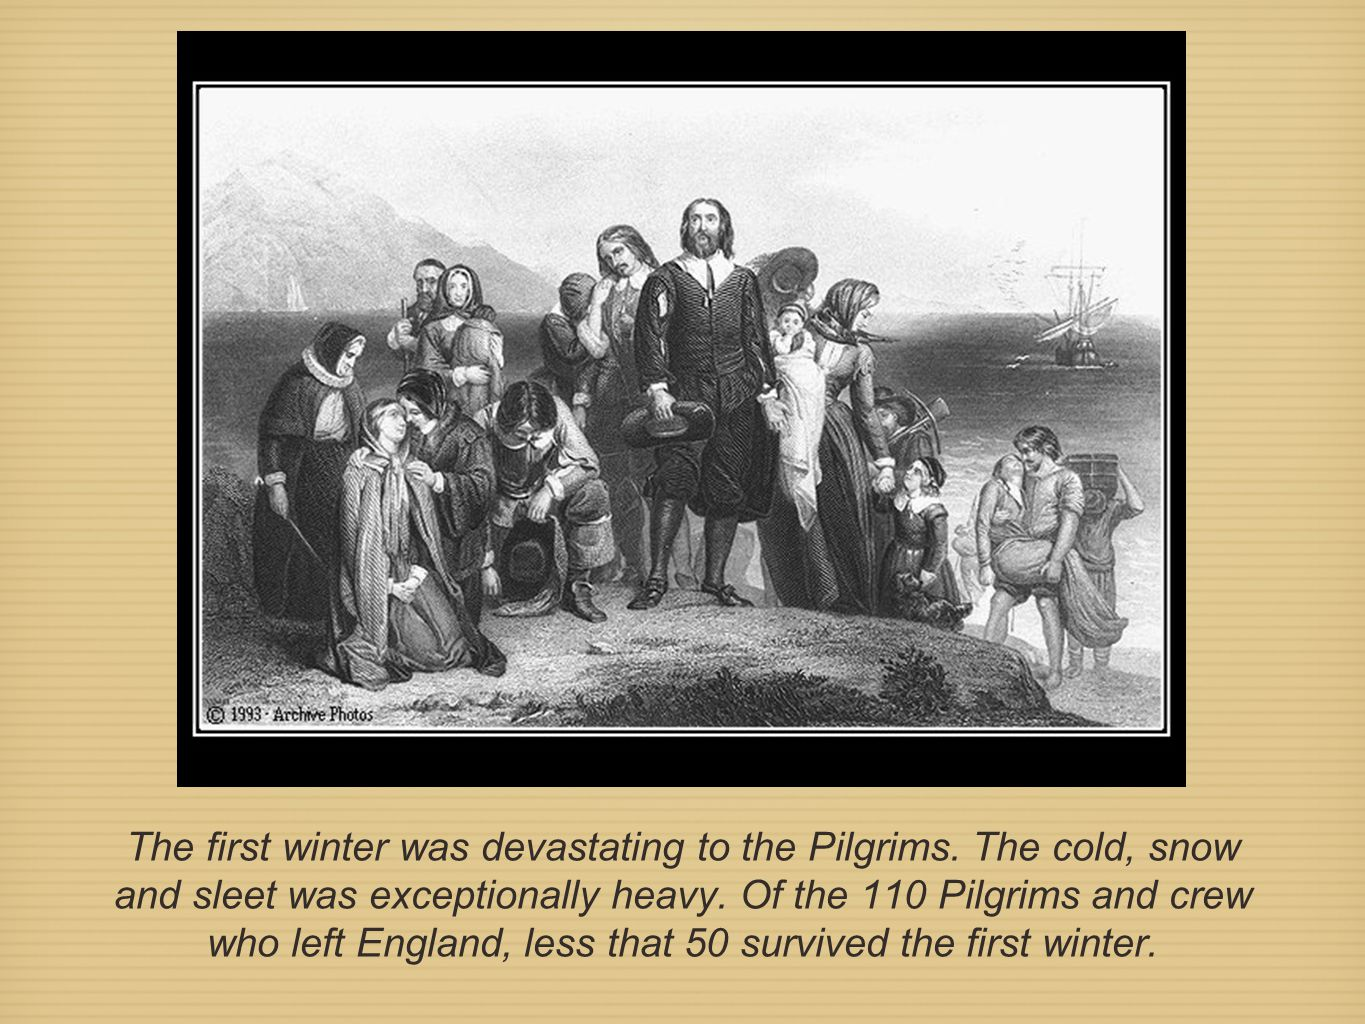 The first winter was devastating to the Pilgrims